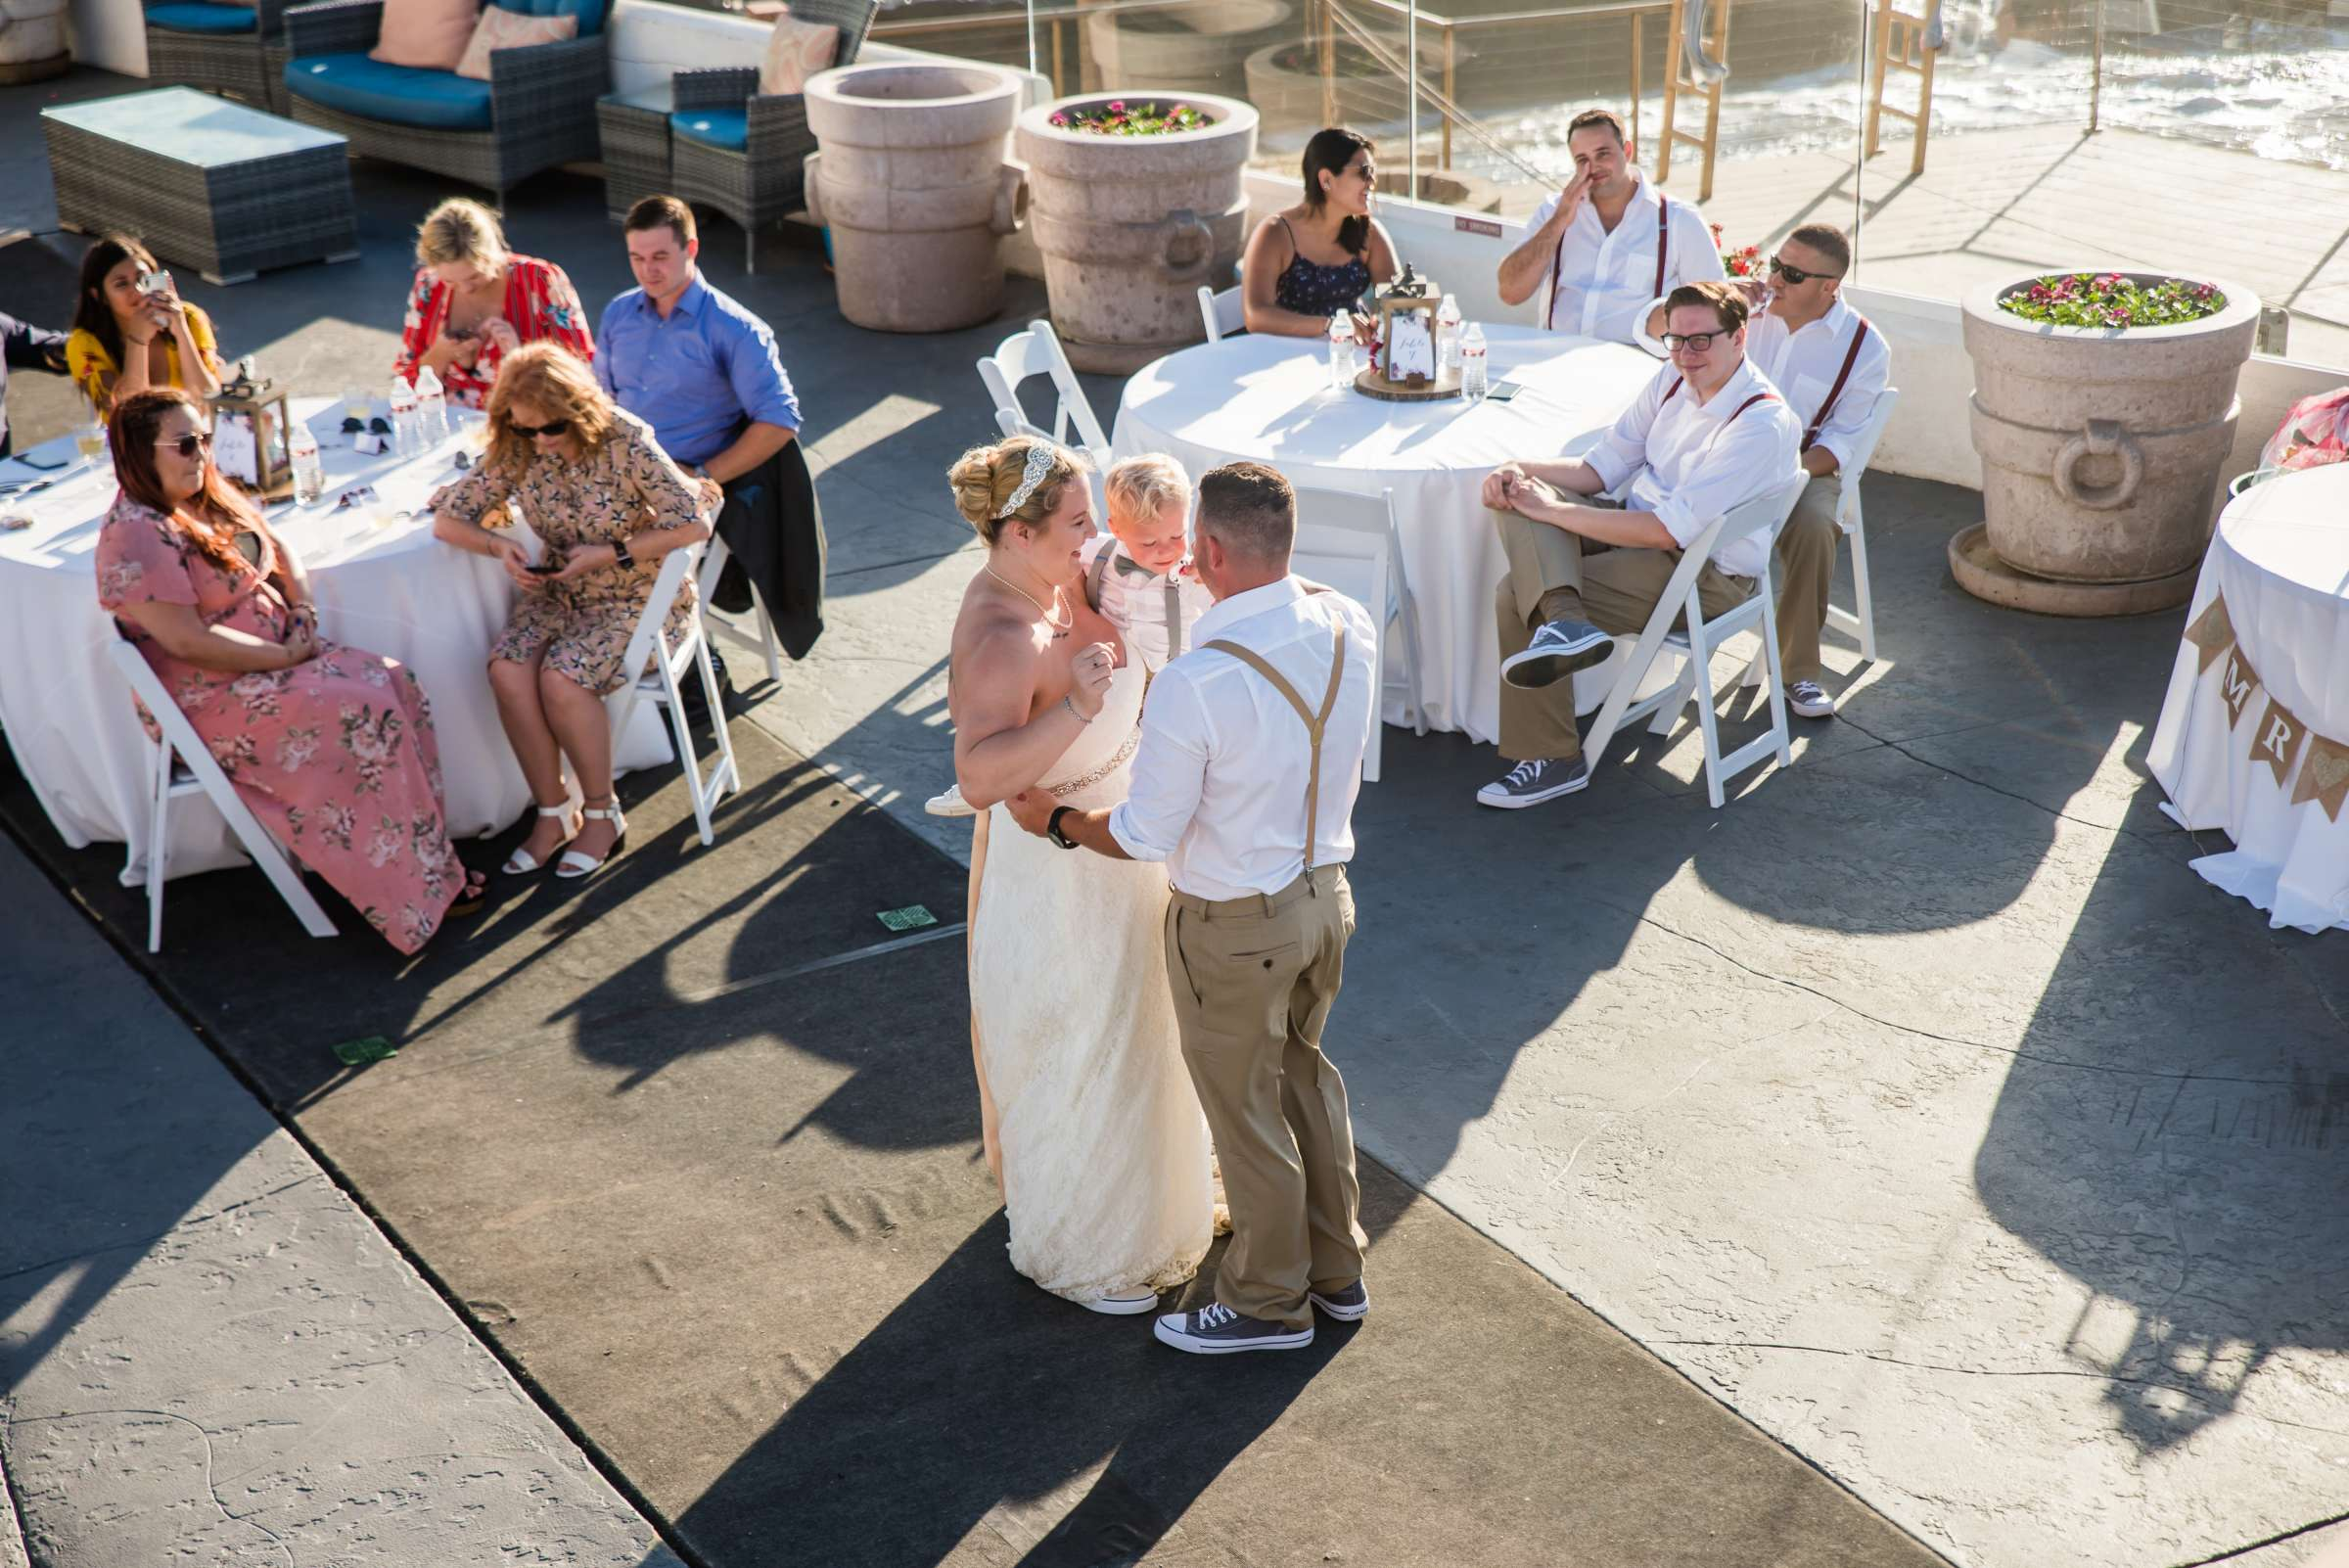 The Inn at Sunset Cliffs Wedding, Melinda and Benjamin Wedding Photo #90 by True Photography